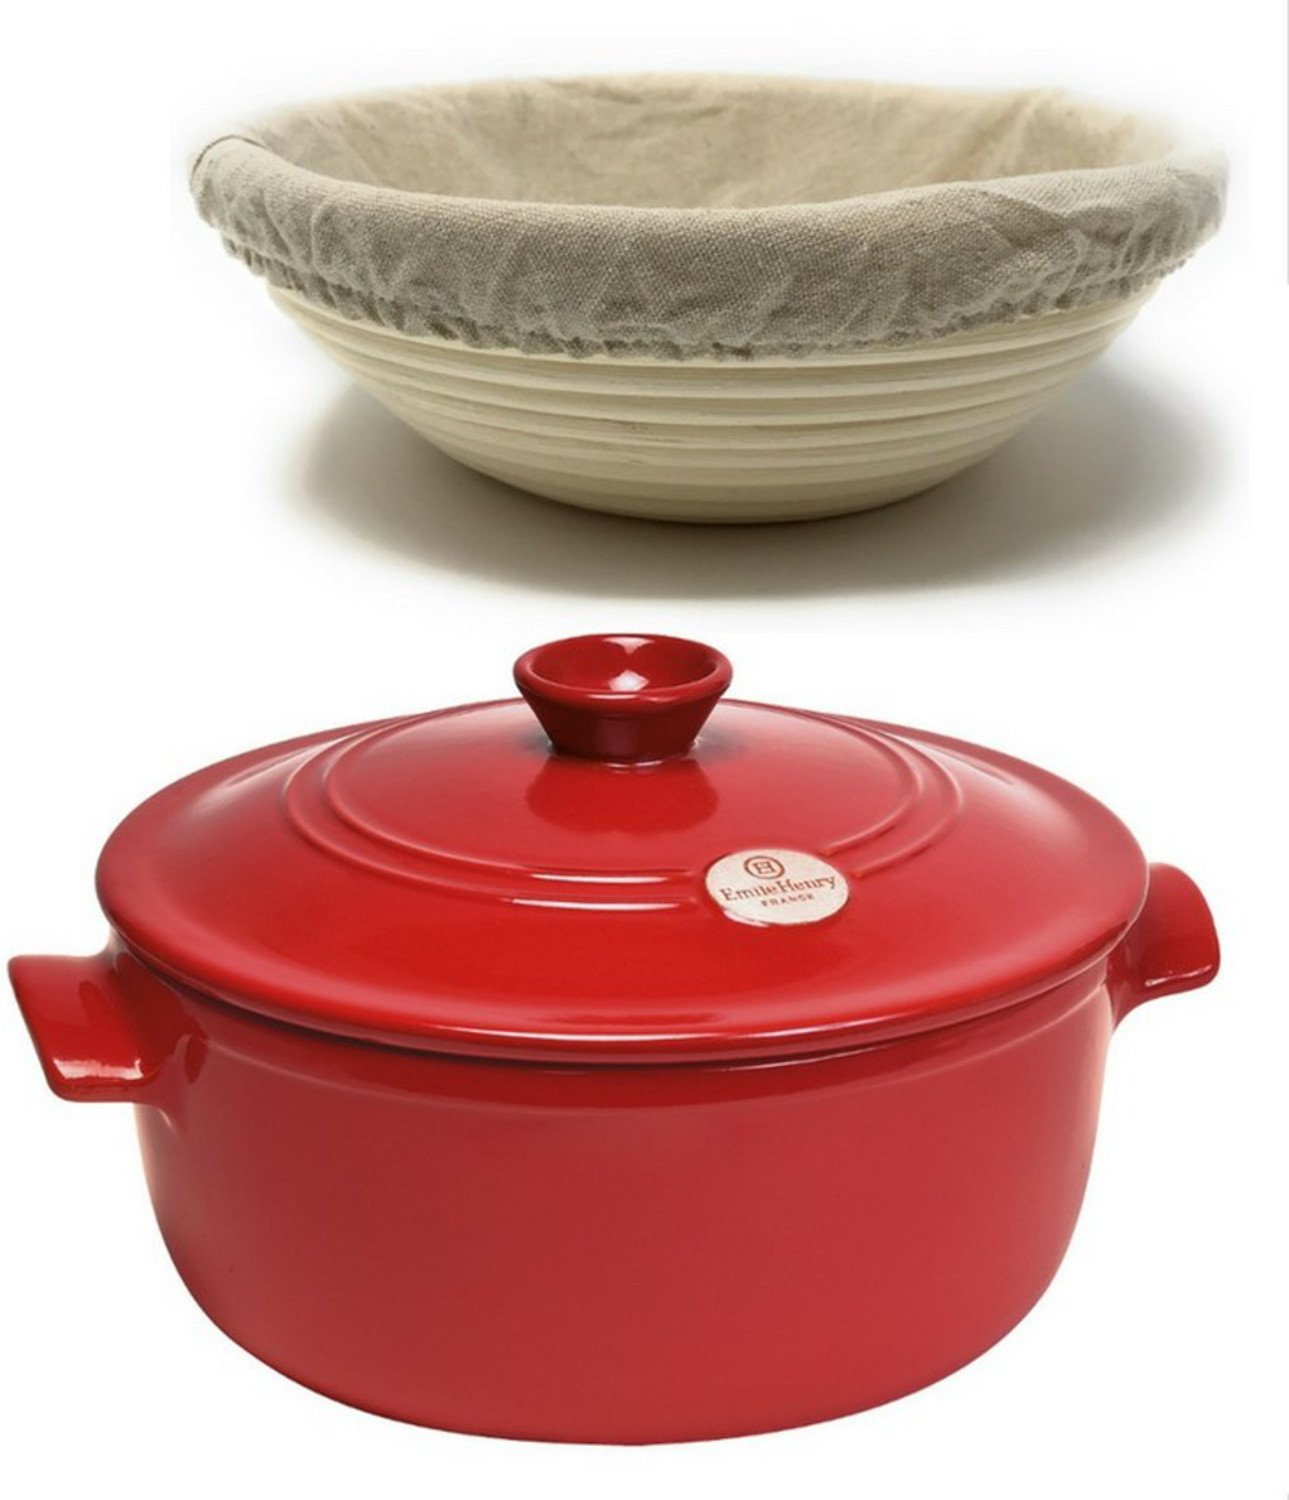 3-Piece Set: Emile Henry Ceramic Round Stewpot Dutch Oven Bread Pot, Burgundy, 8 inch Round Banneton Bread Rising Basket, Fitted Cotton Liner - Bundle